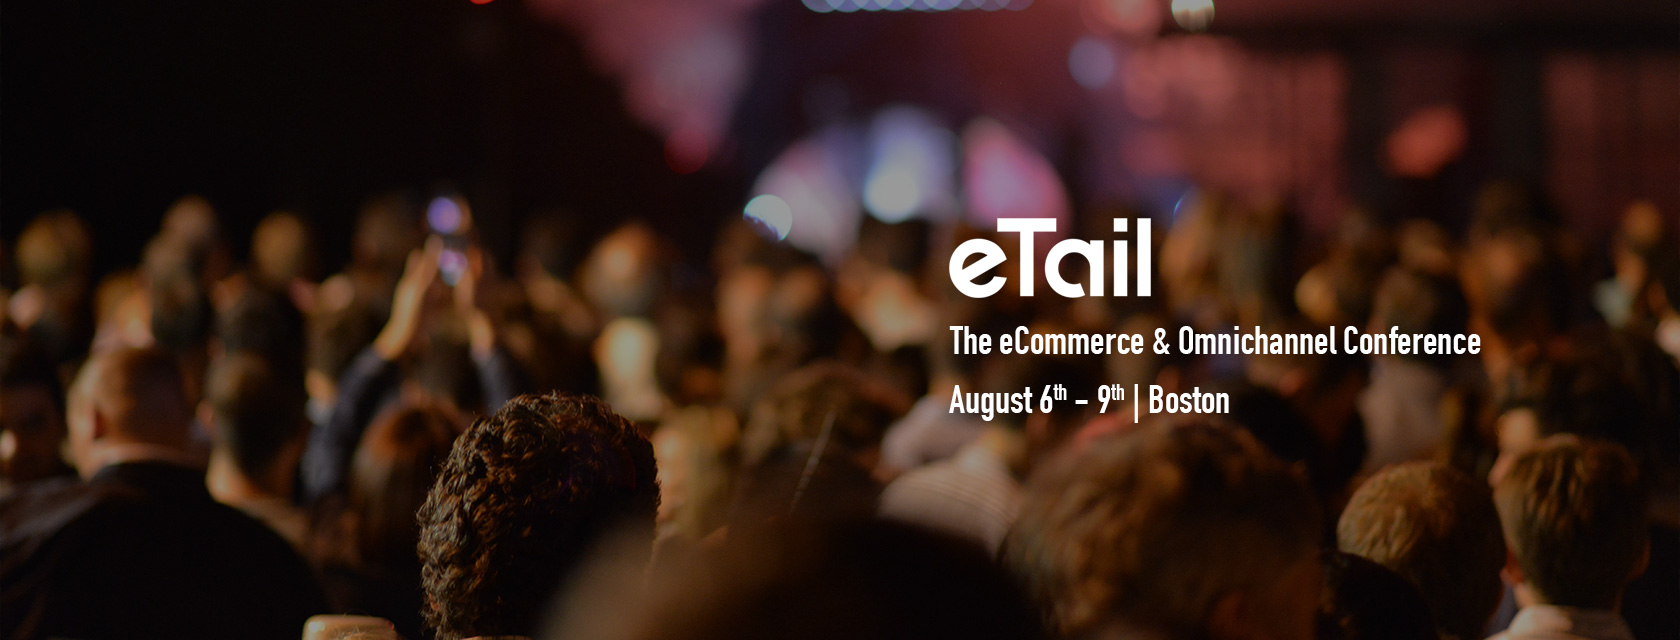 eTail East 2018 – The go-to-place for eCommerce innovation, learning and networking fun.